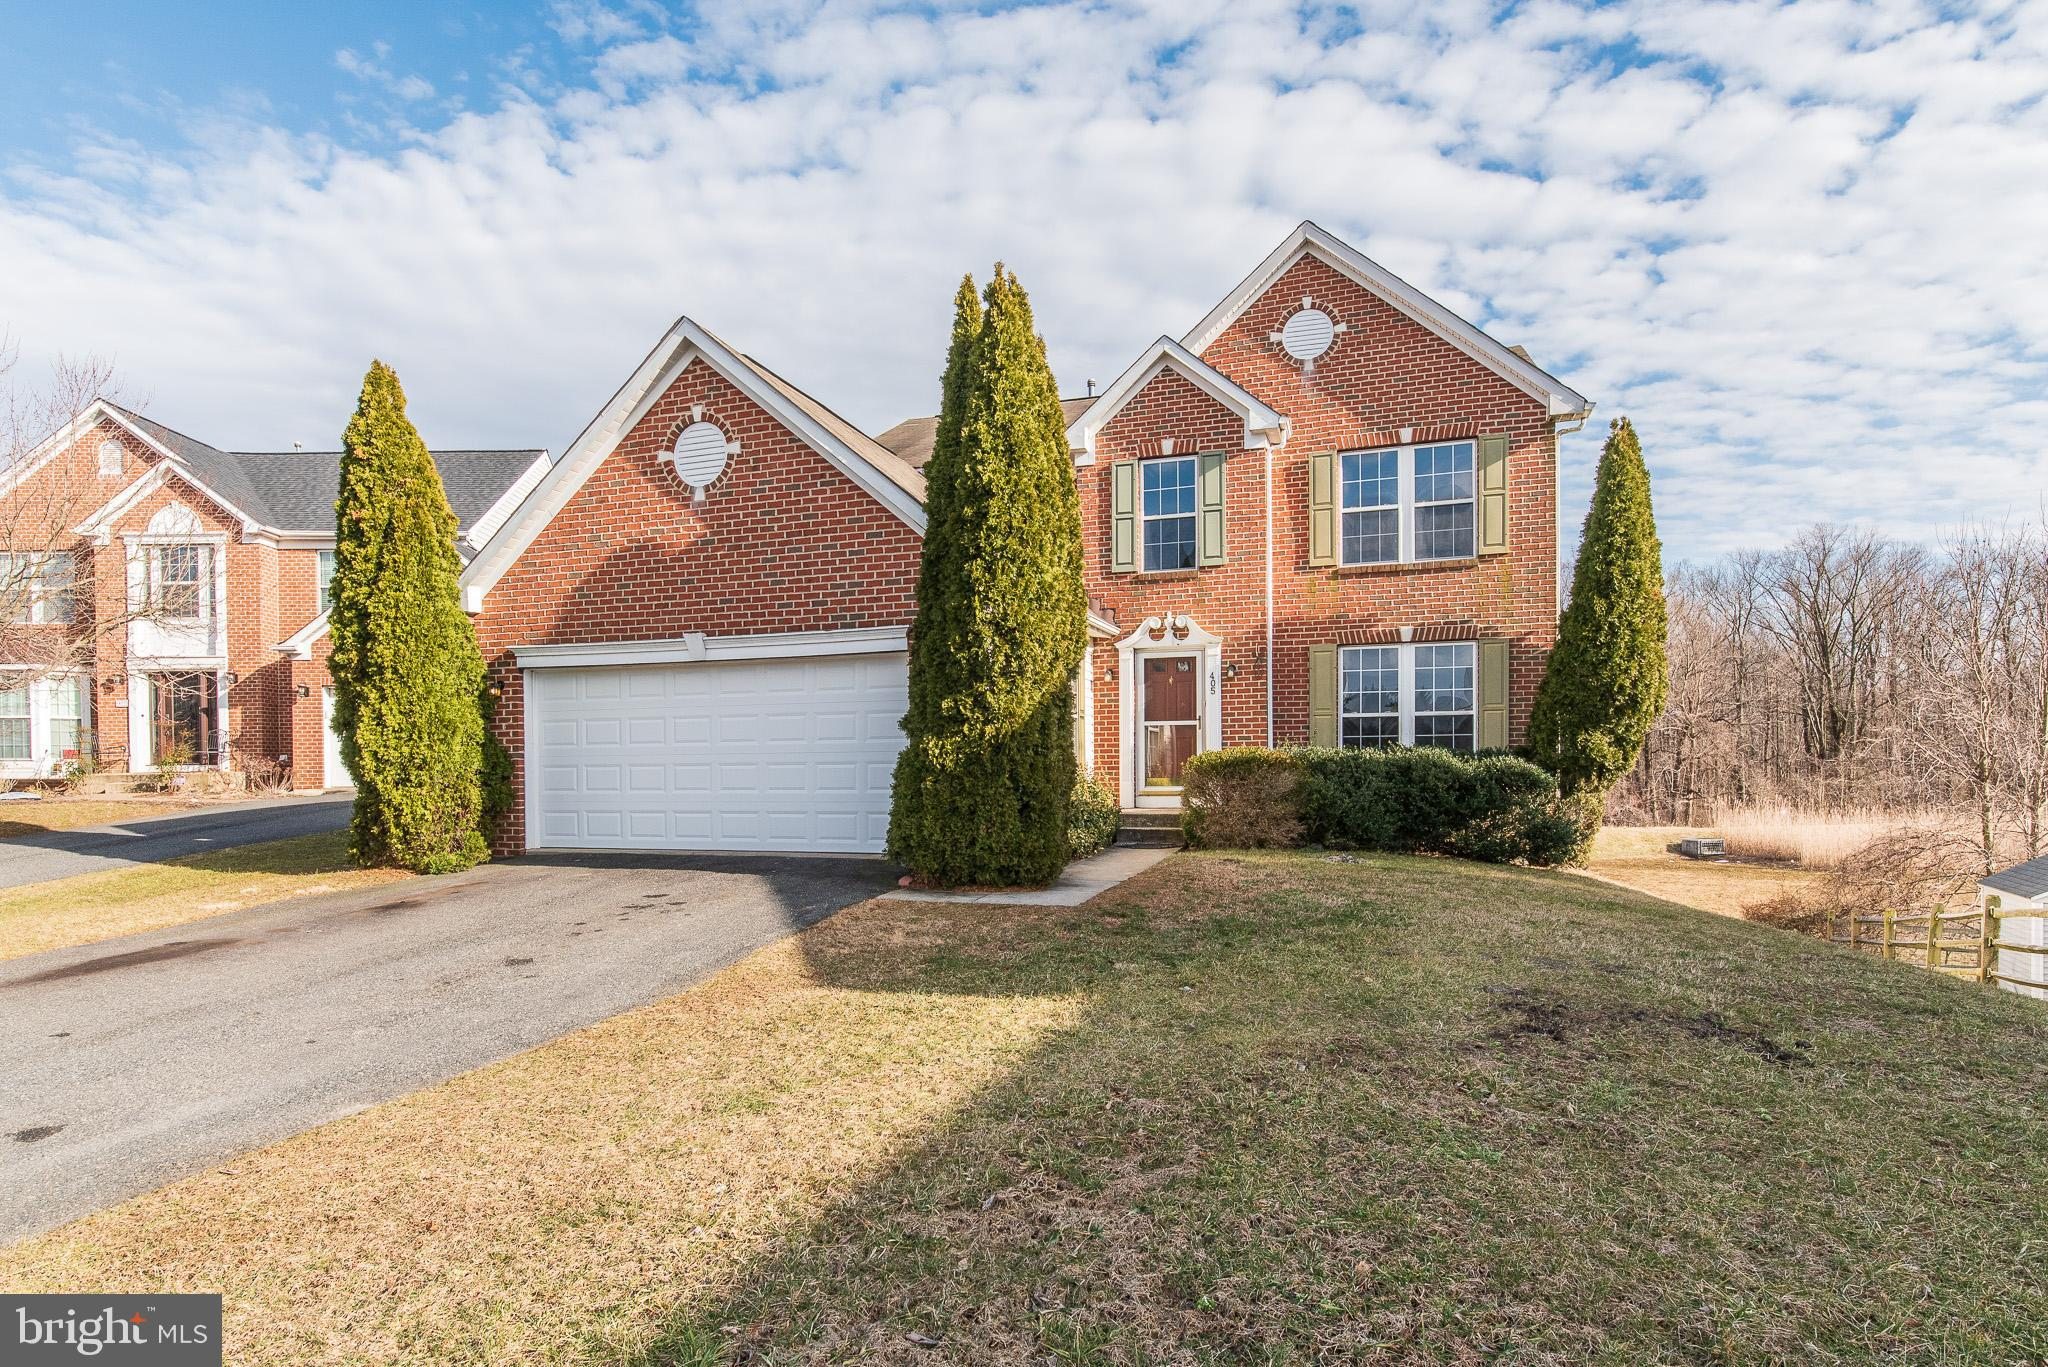 405 SUGARBERRY COURT, EDGEWOOD, MD 21040